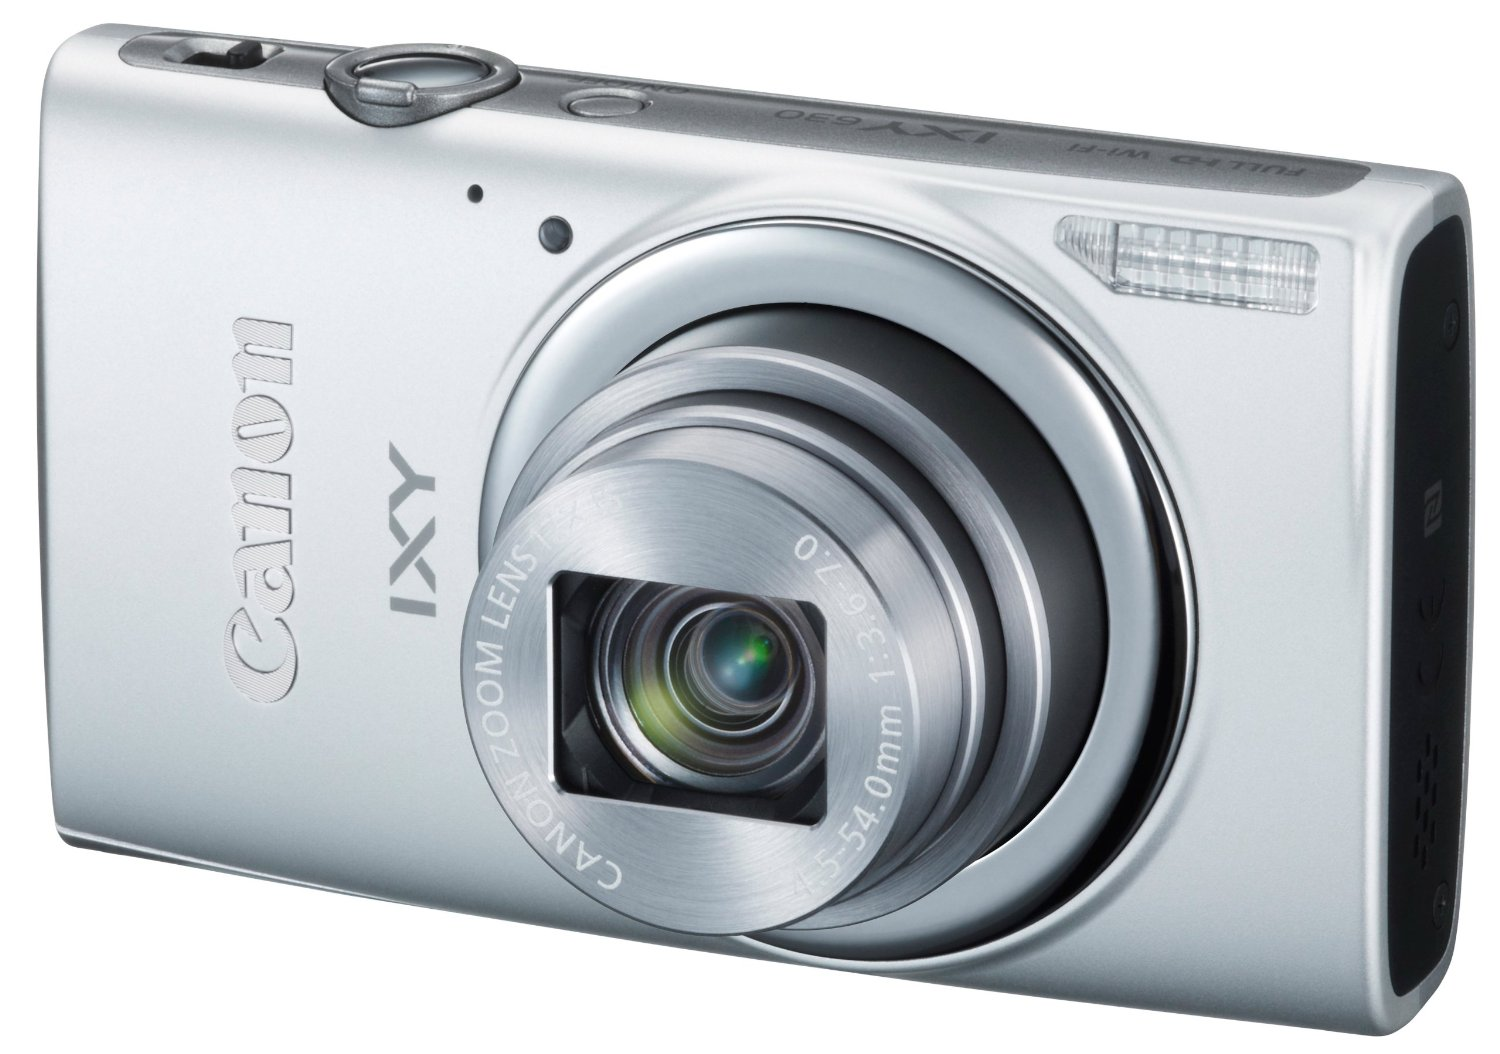 Canon Ixy 140 Digital Camera Best Price Bangladesh Buy Now